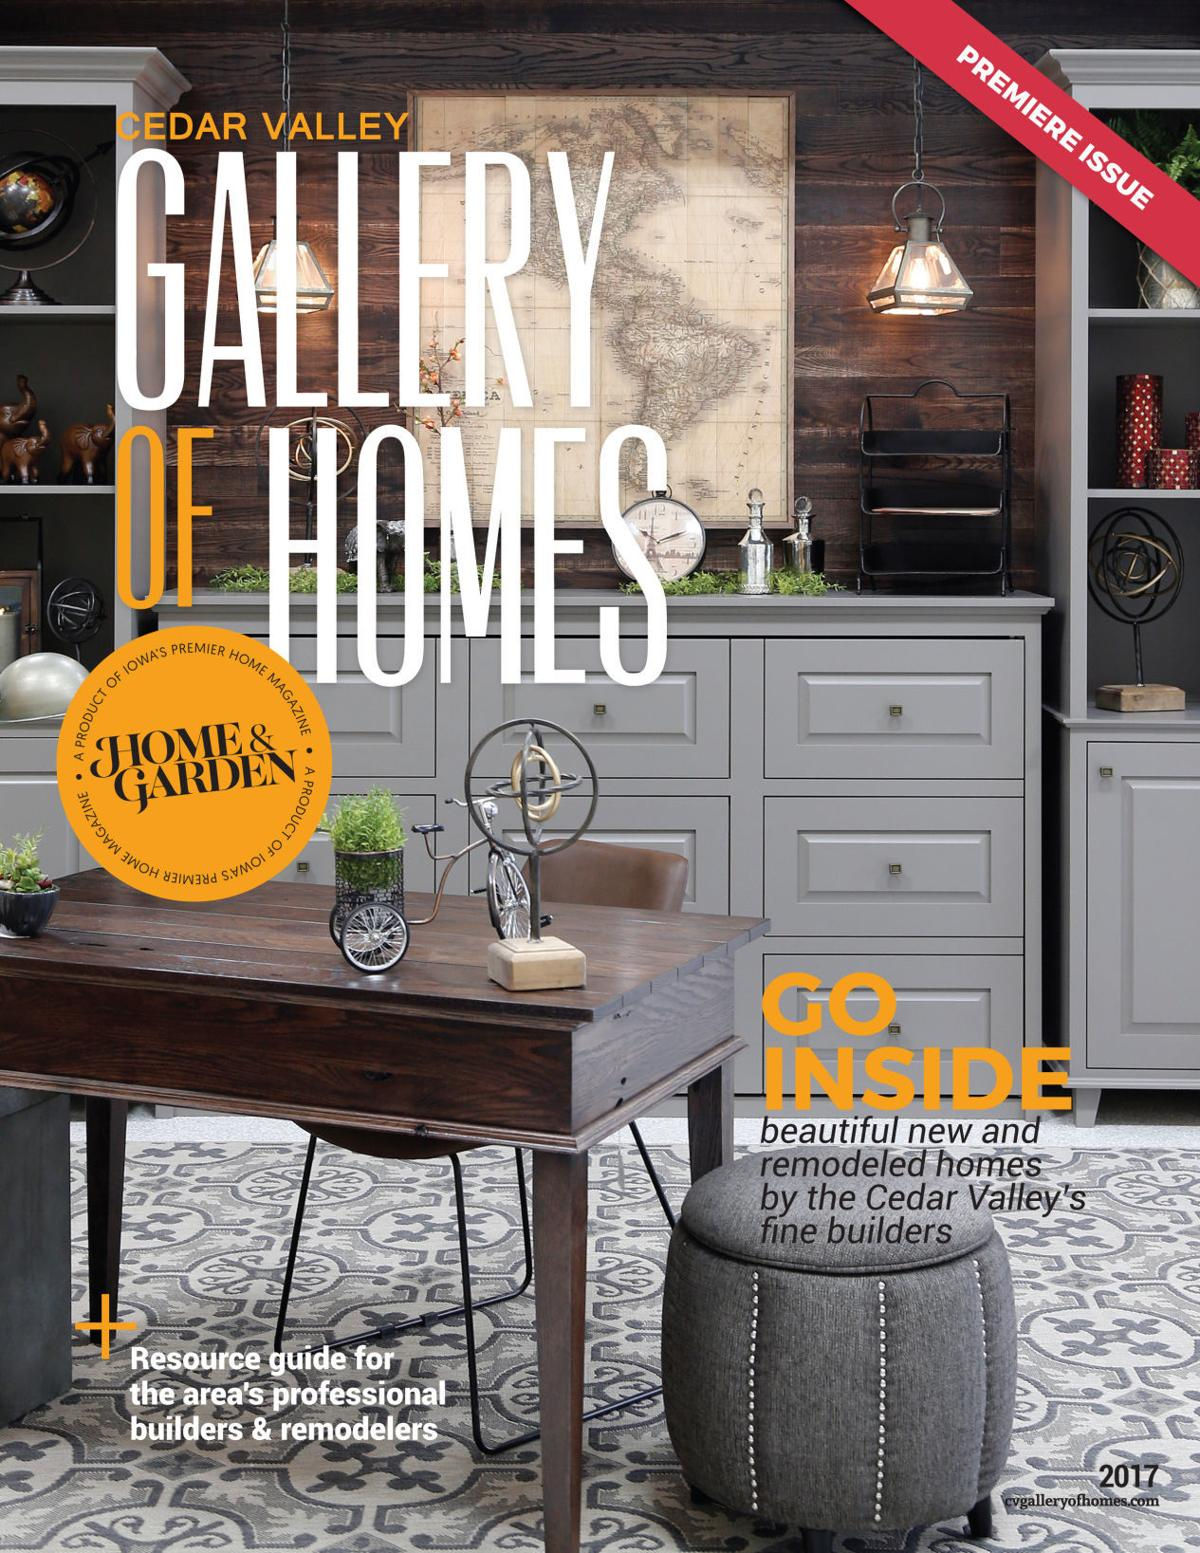 galleryof-homes-jpeg-cover